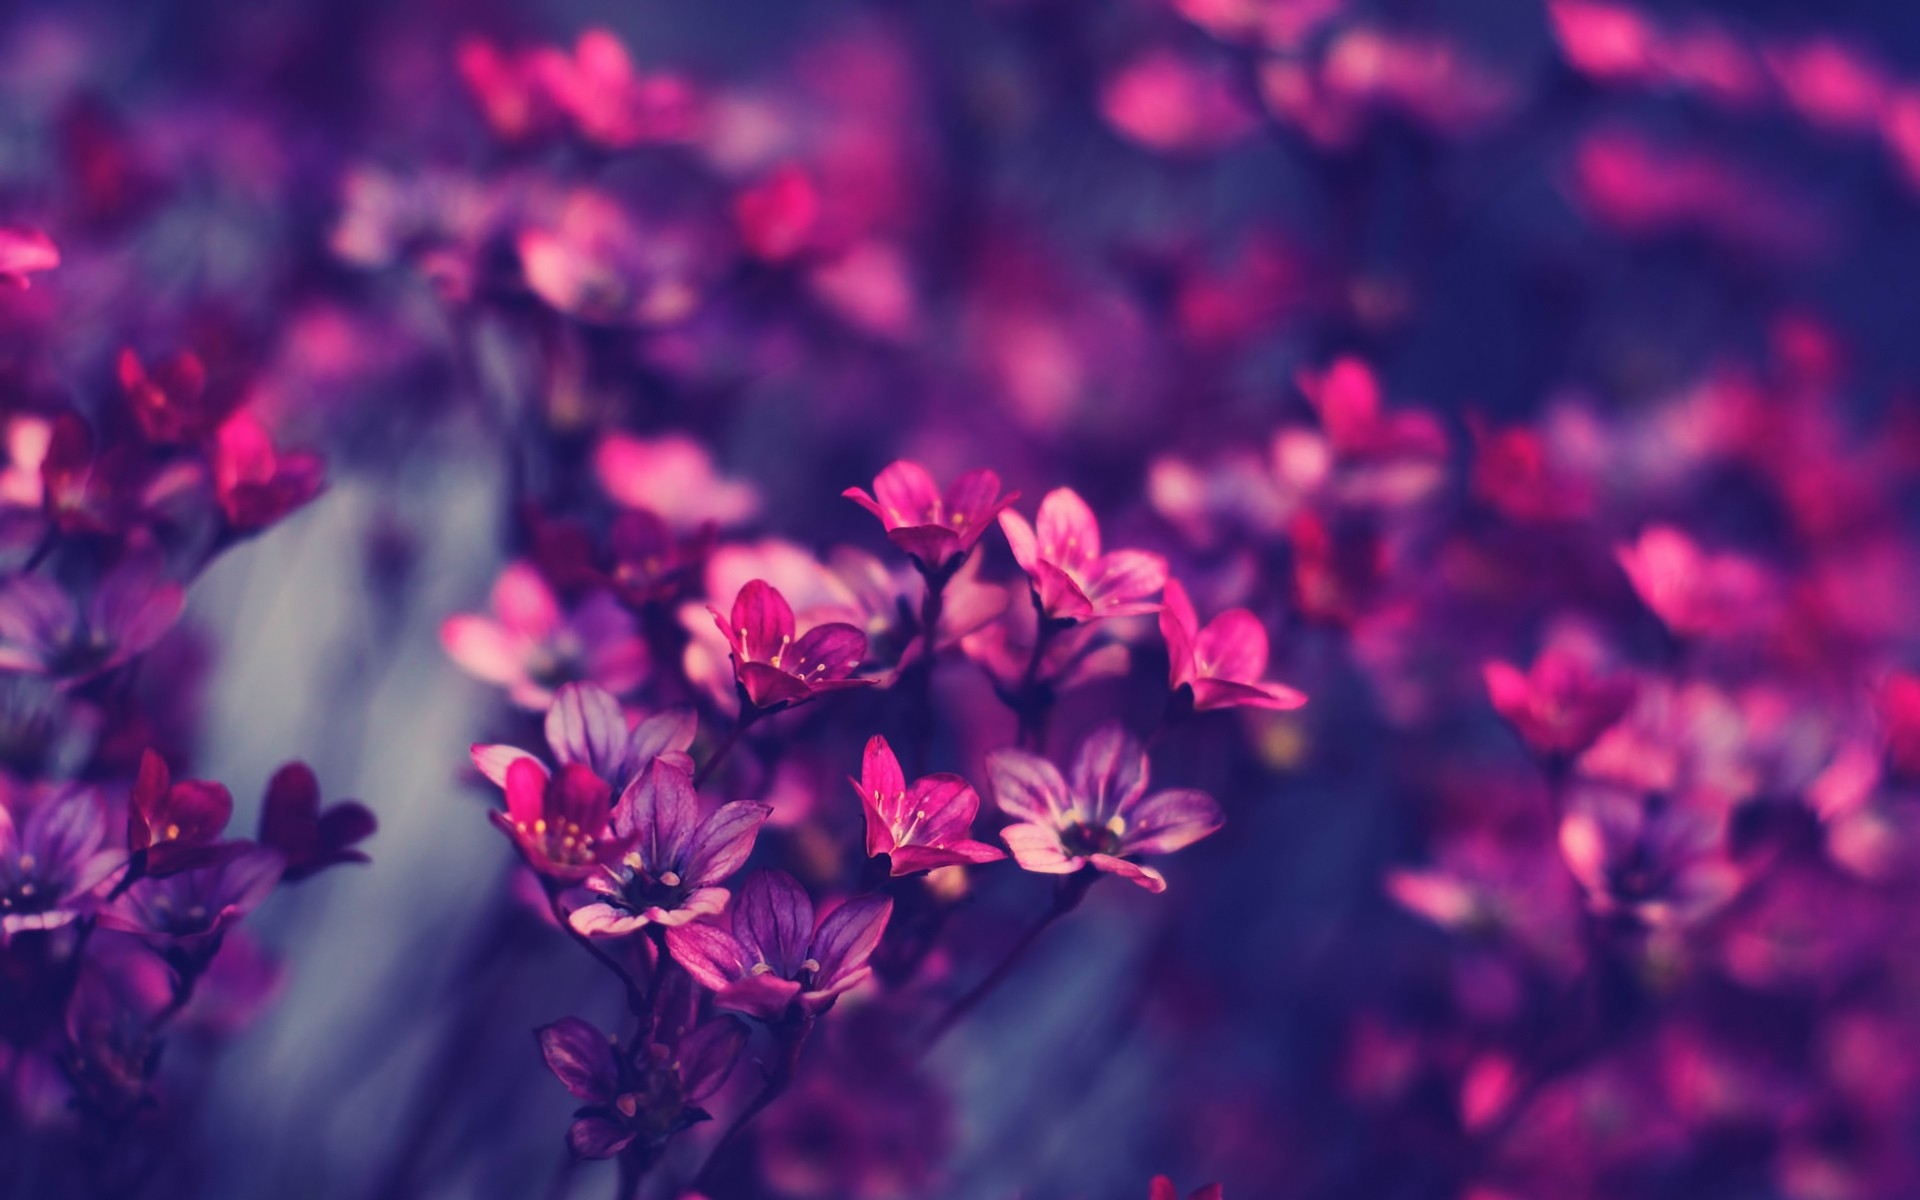 flowers, petals, purple